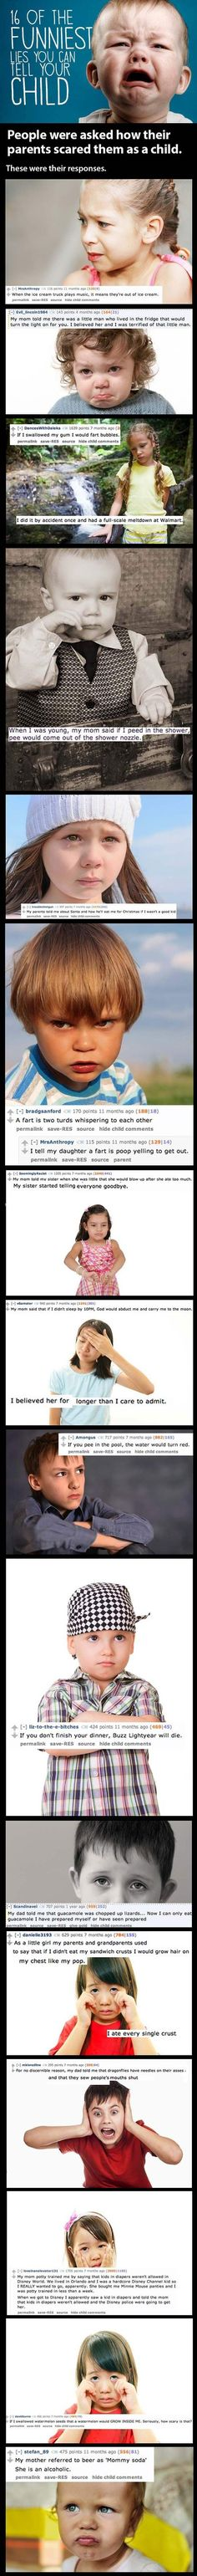 Lies parents tell us. Some of these have me DYING!